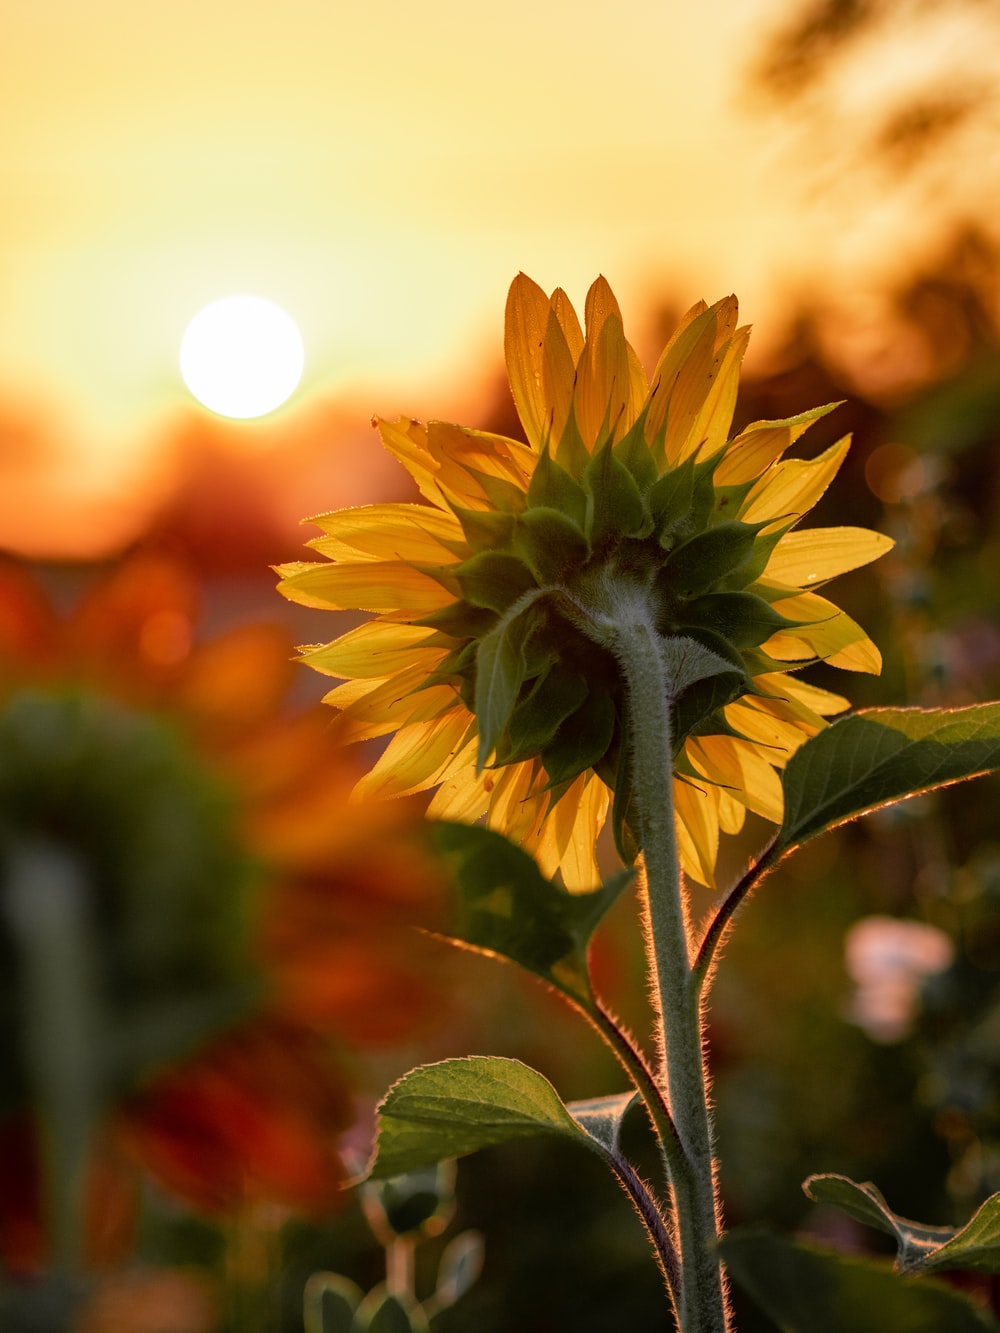 close-up photography of yellow sunflower